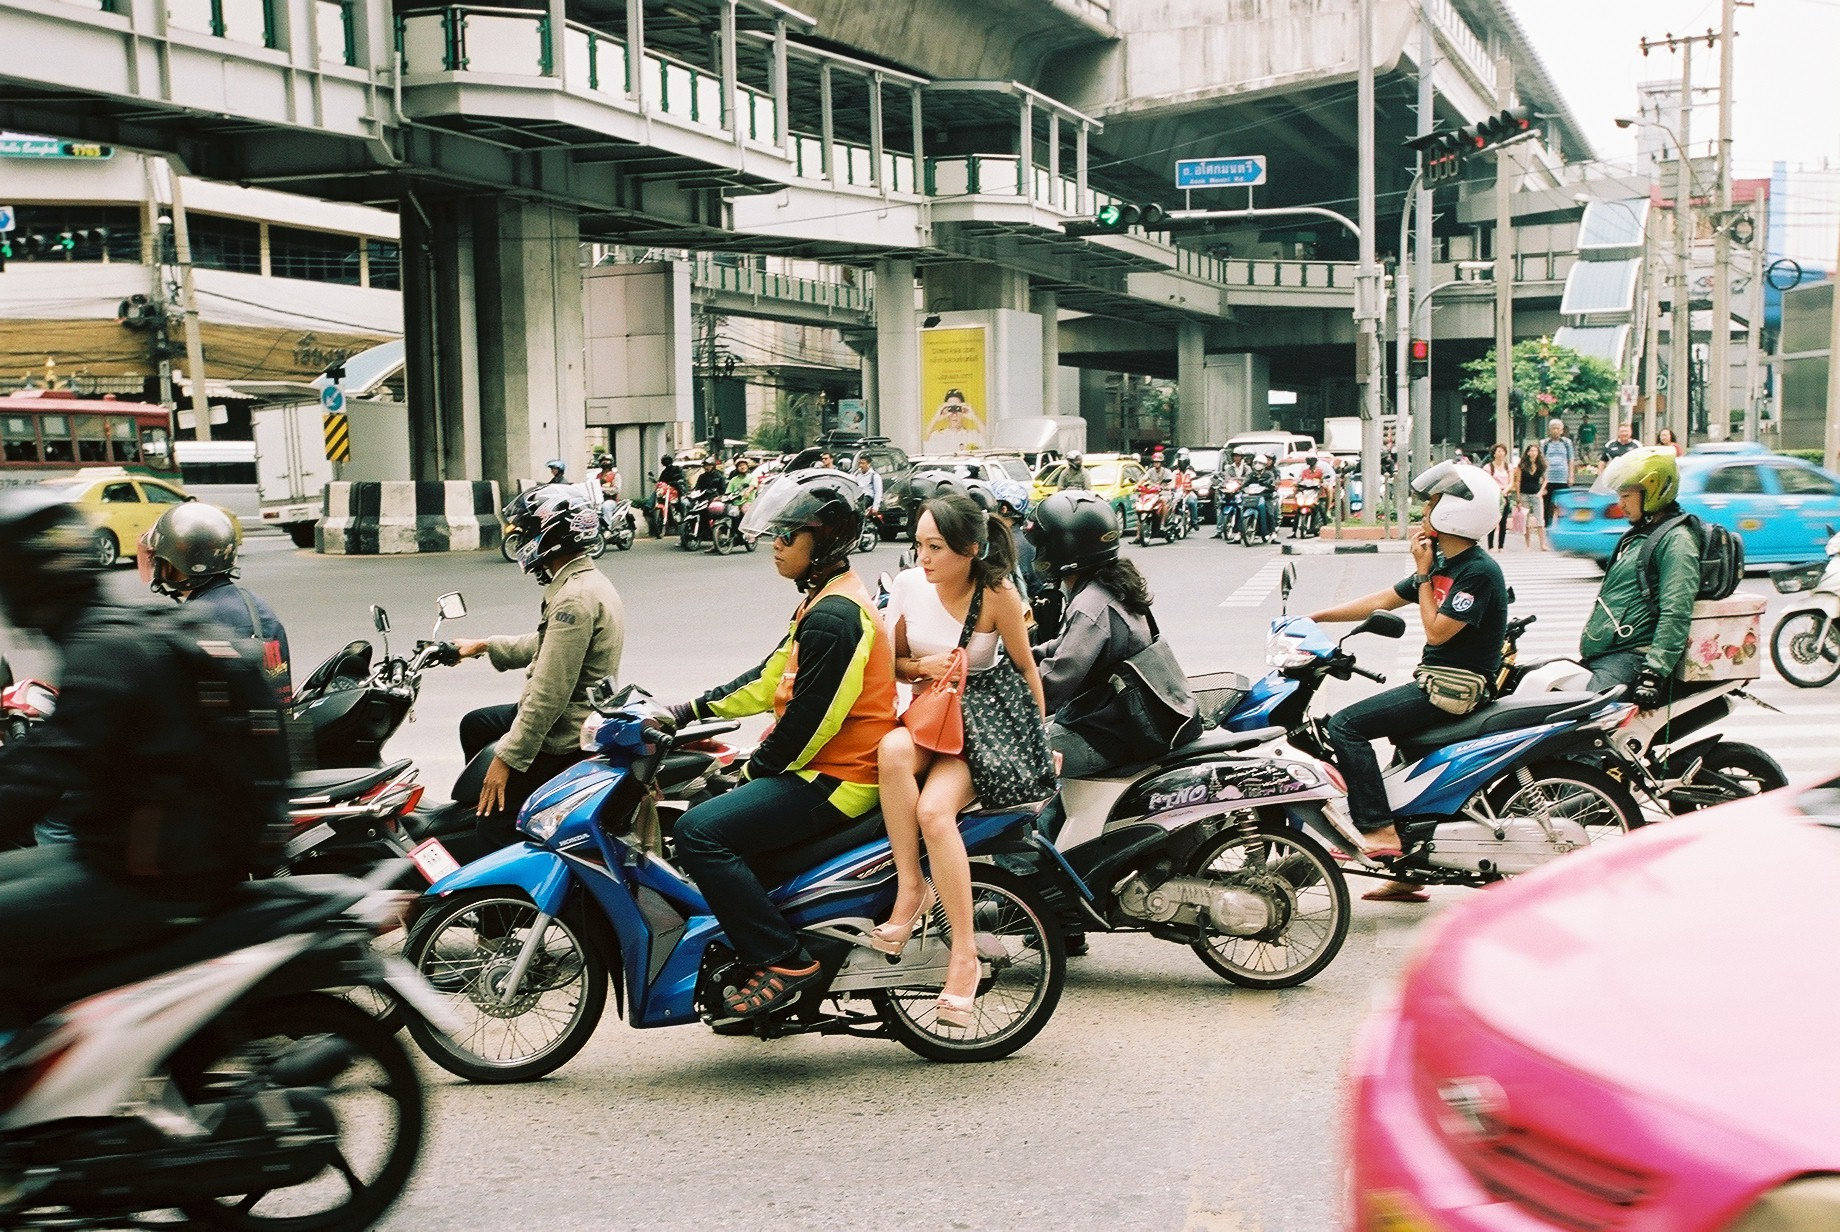 Portra 160 | Motorcycle taxis!! Fastest way to get around the city as bikes can weave through the traffic jams.